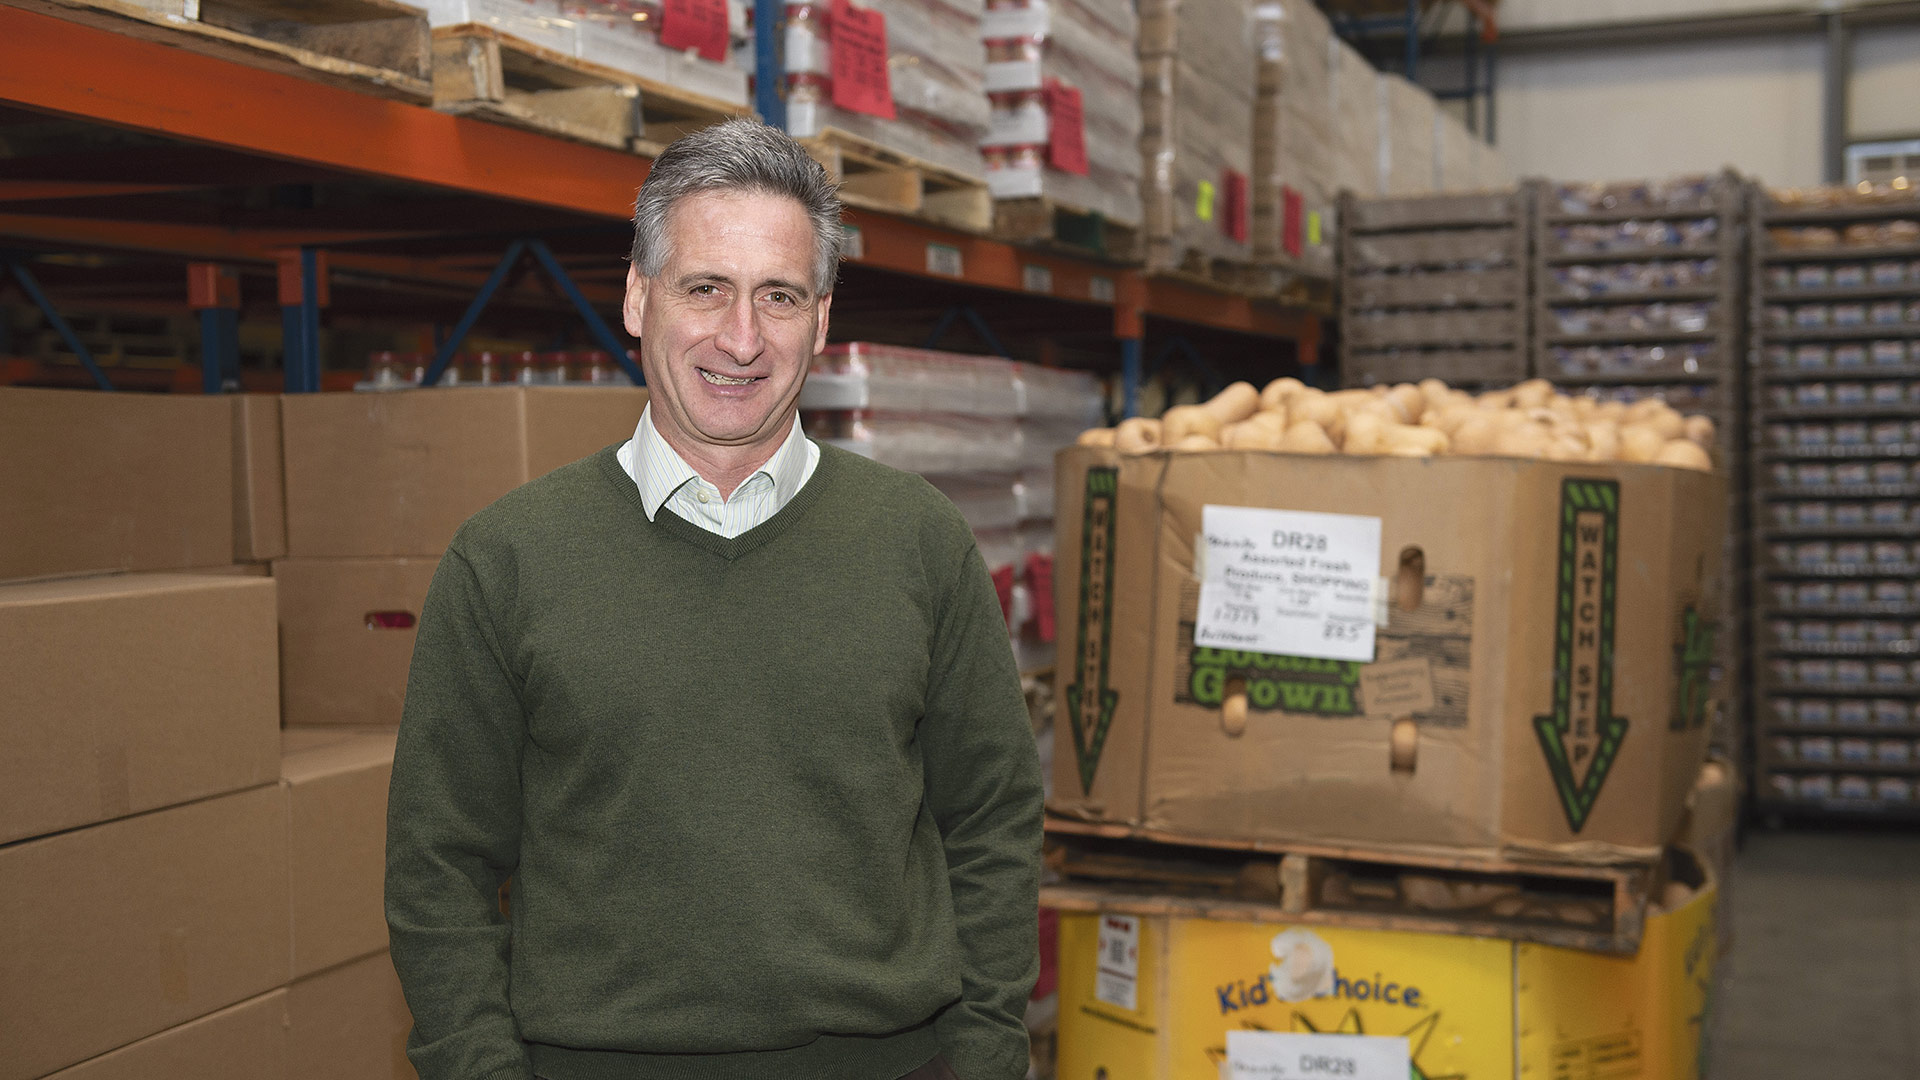 Andrew Morehouse, executive director of the Food Bank of Western Massachusetts